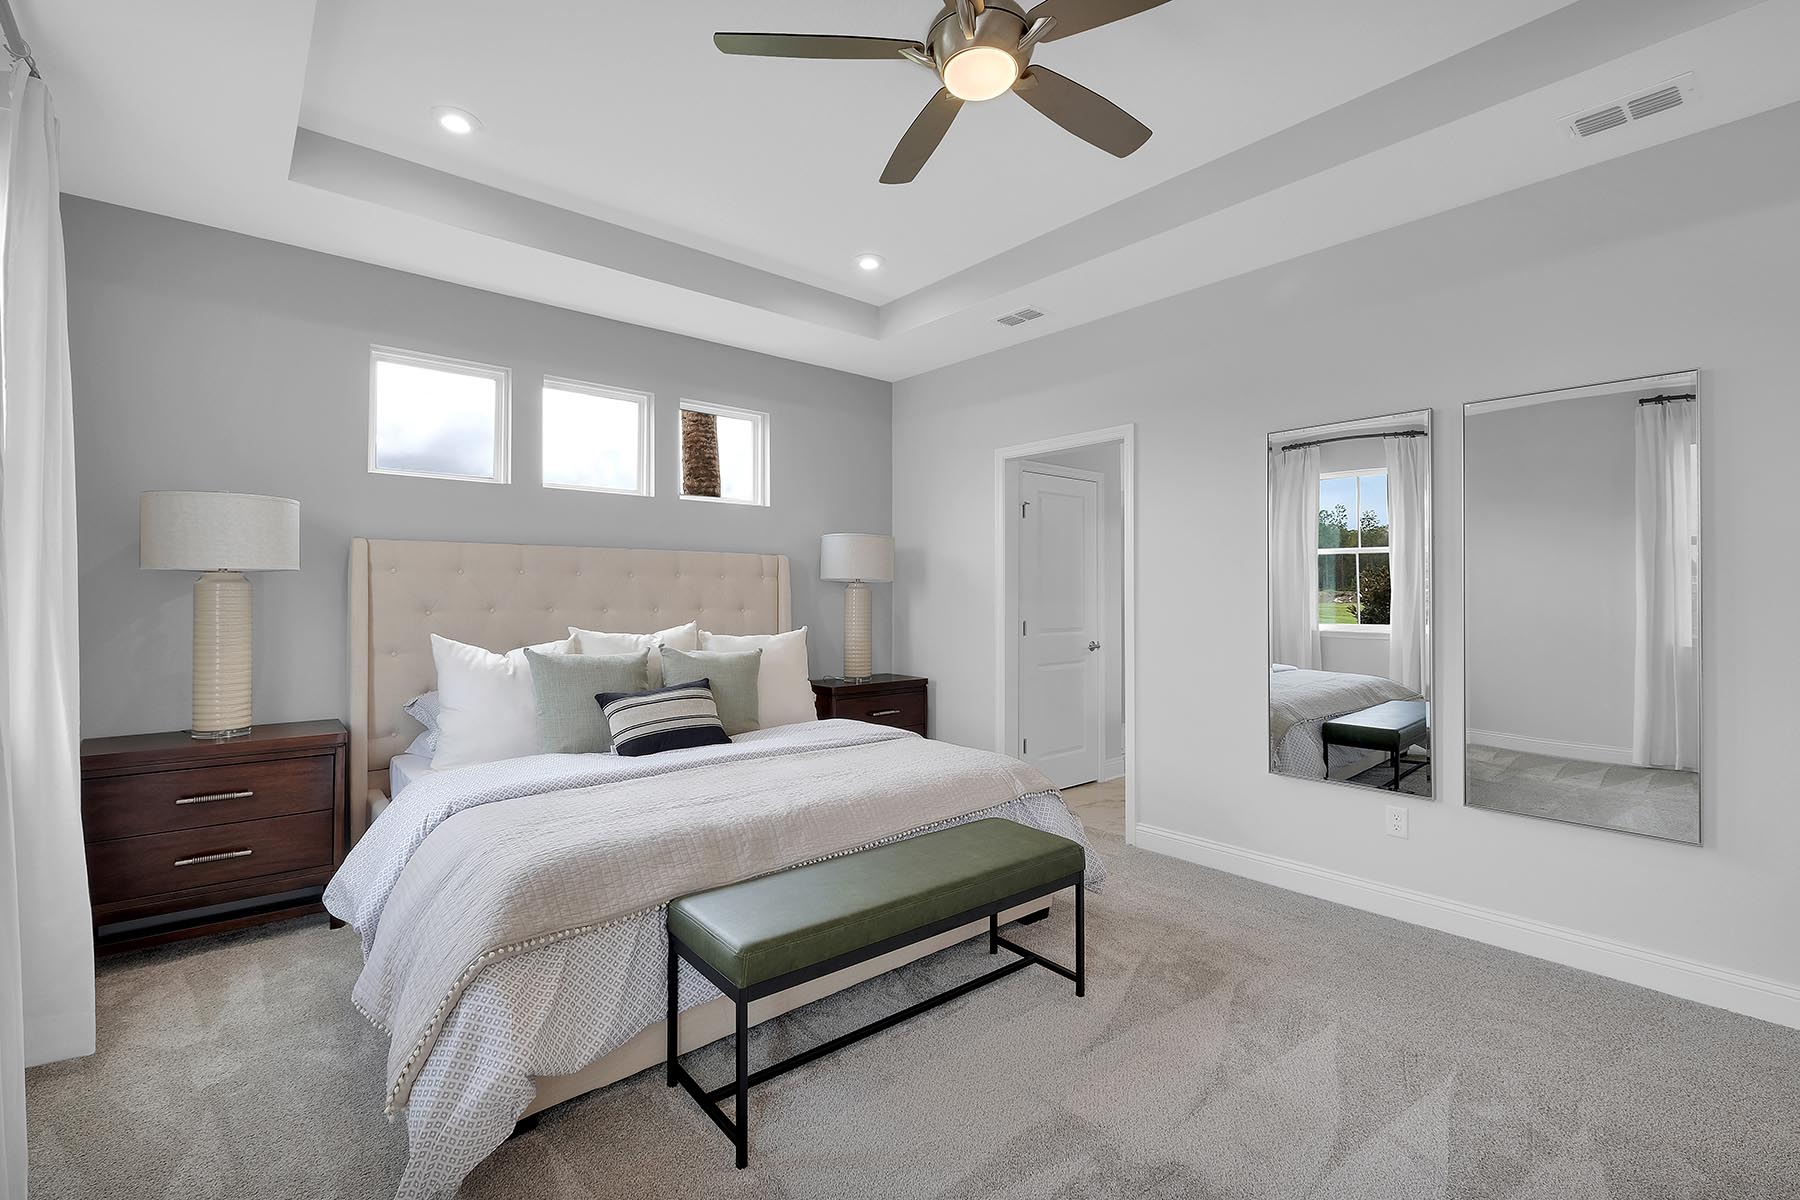 Bristol Plan Bedroom at Forest Park at Wildlight in Yulee Florida by Mattamy Homes